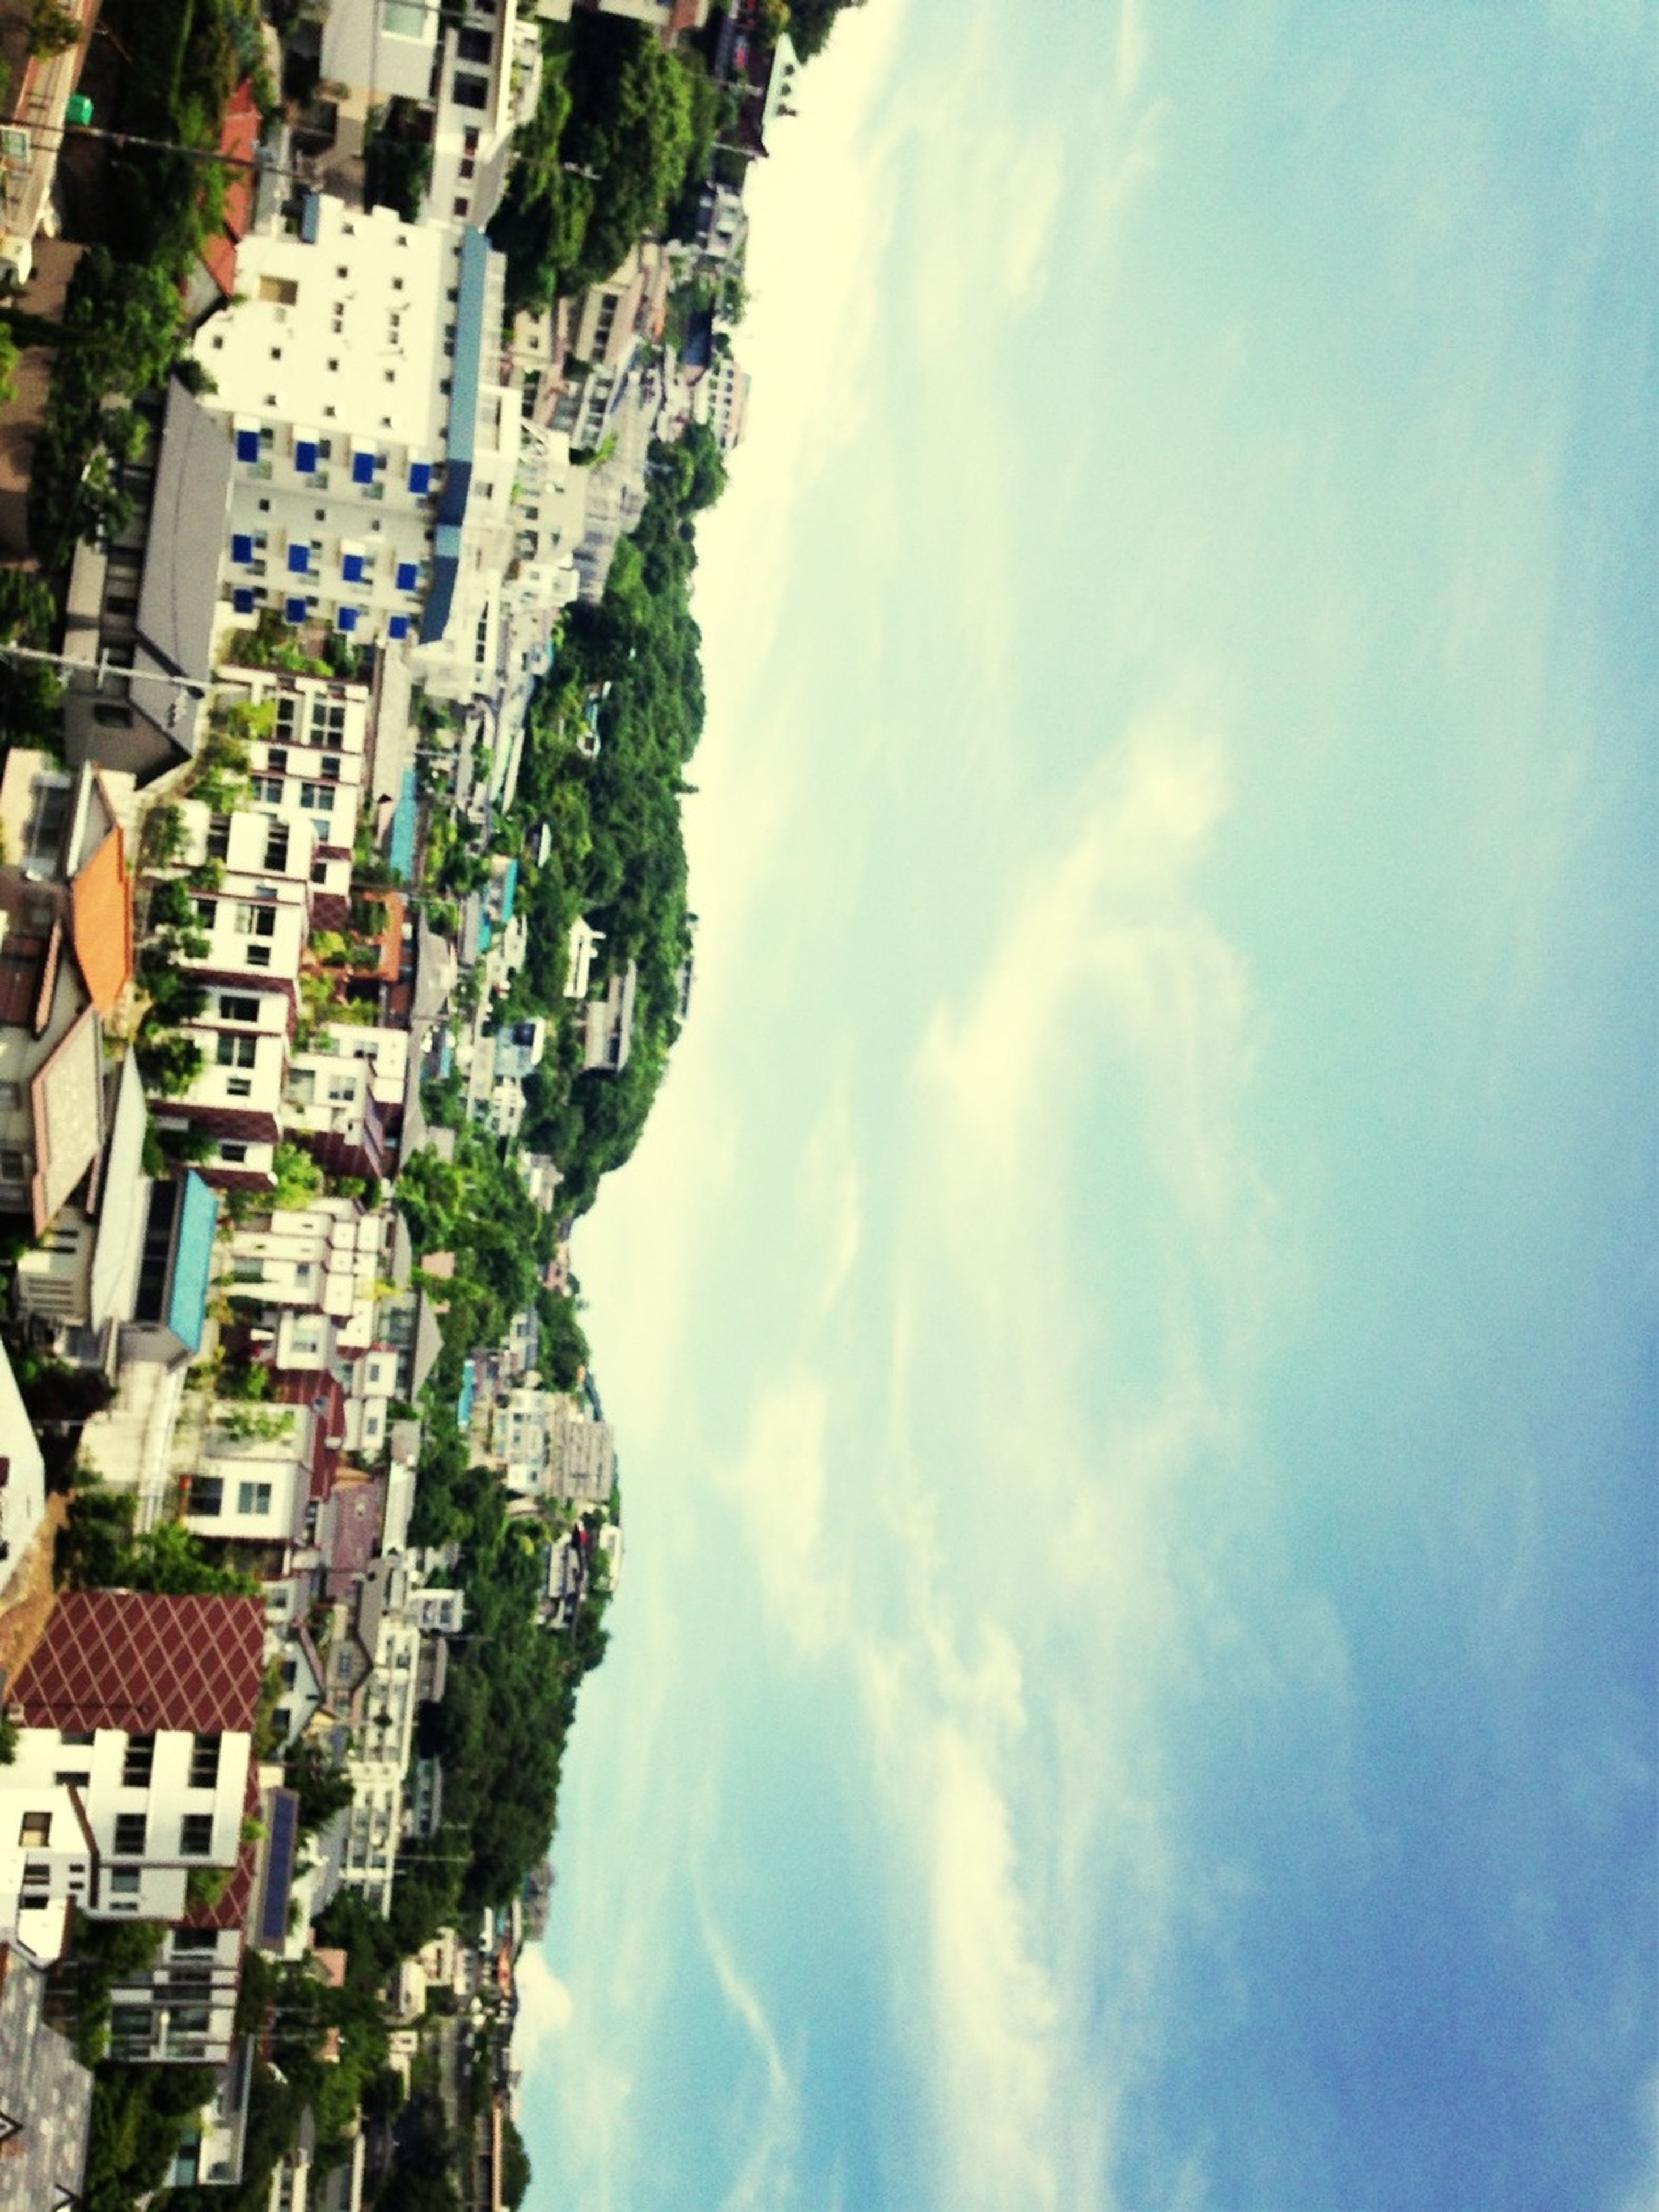 building exterior, architecture, built structure, city, sky, cloud - sky, cityscape, residential building, residential district, residential structure, crowded, cloud, high angle view, cloudy, city life, house, day, tree, town, outdoors